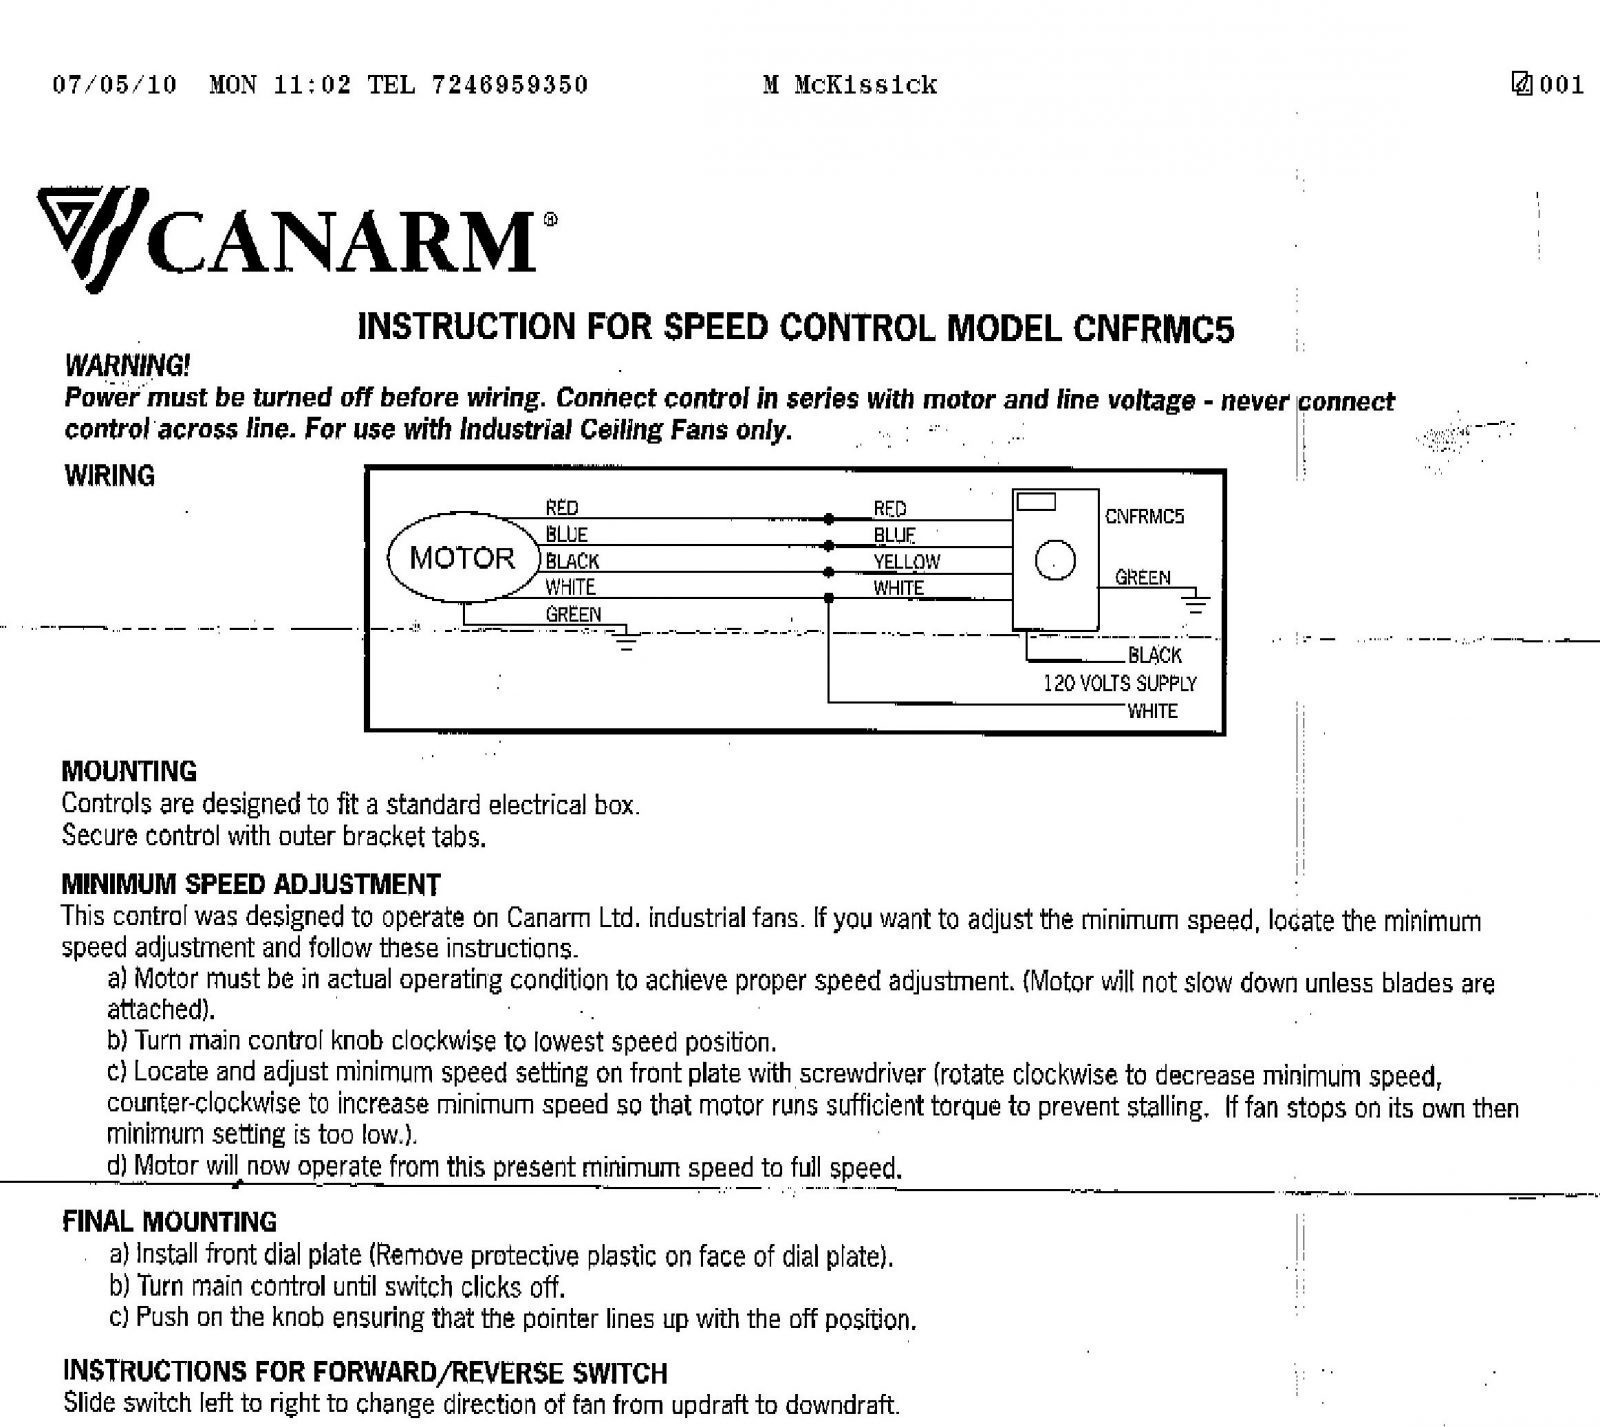 canarm industrial ceiling fans wiring diagram Collection-Wiring Diagram For Canarm Exhaust Fan Fresh Industrial Exhaust Fan Wiring Diagram Best Unique Light And Fan 4-q